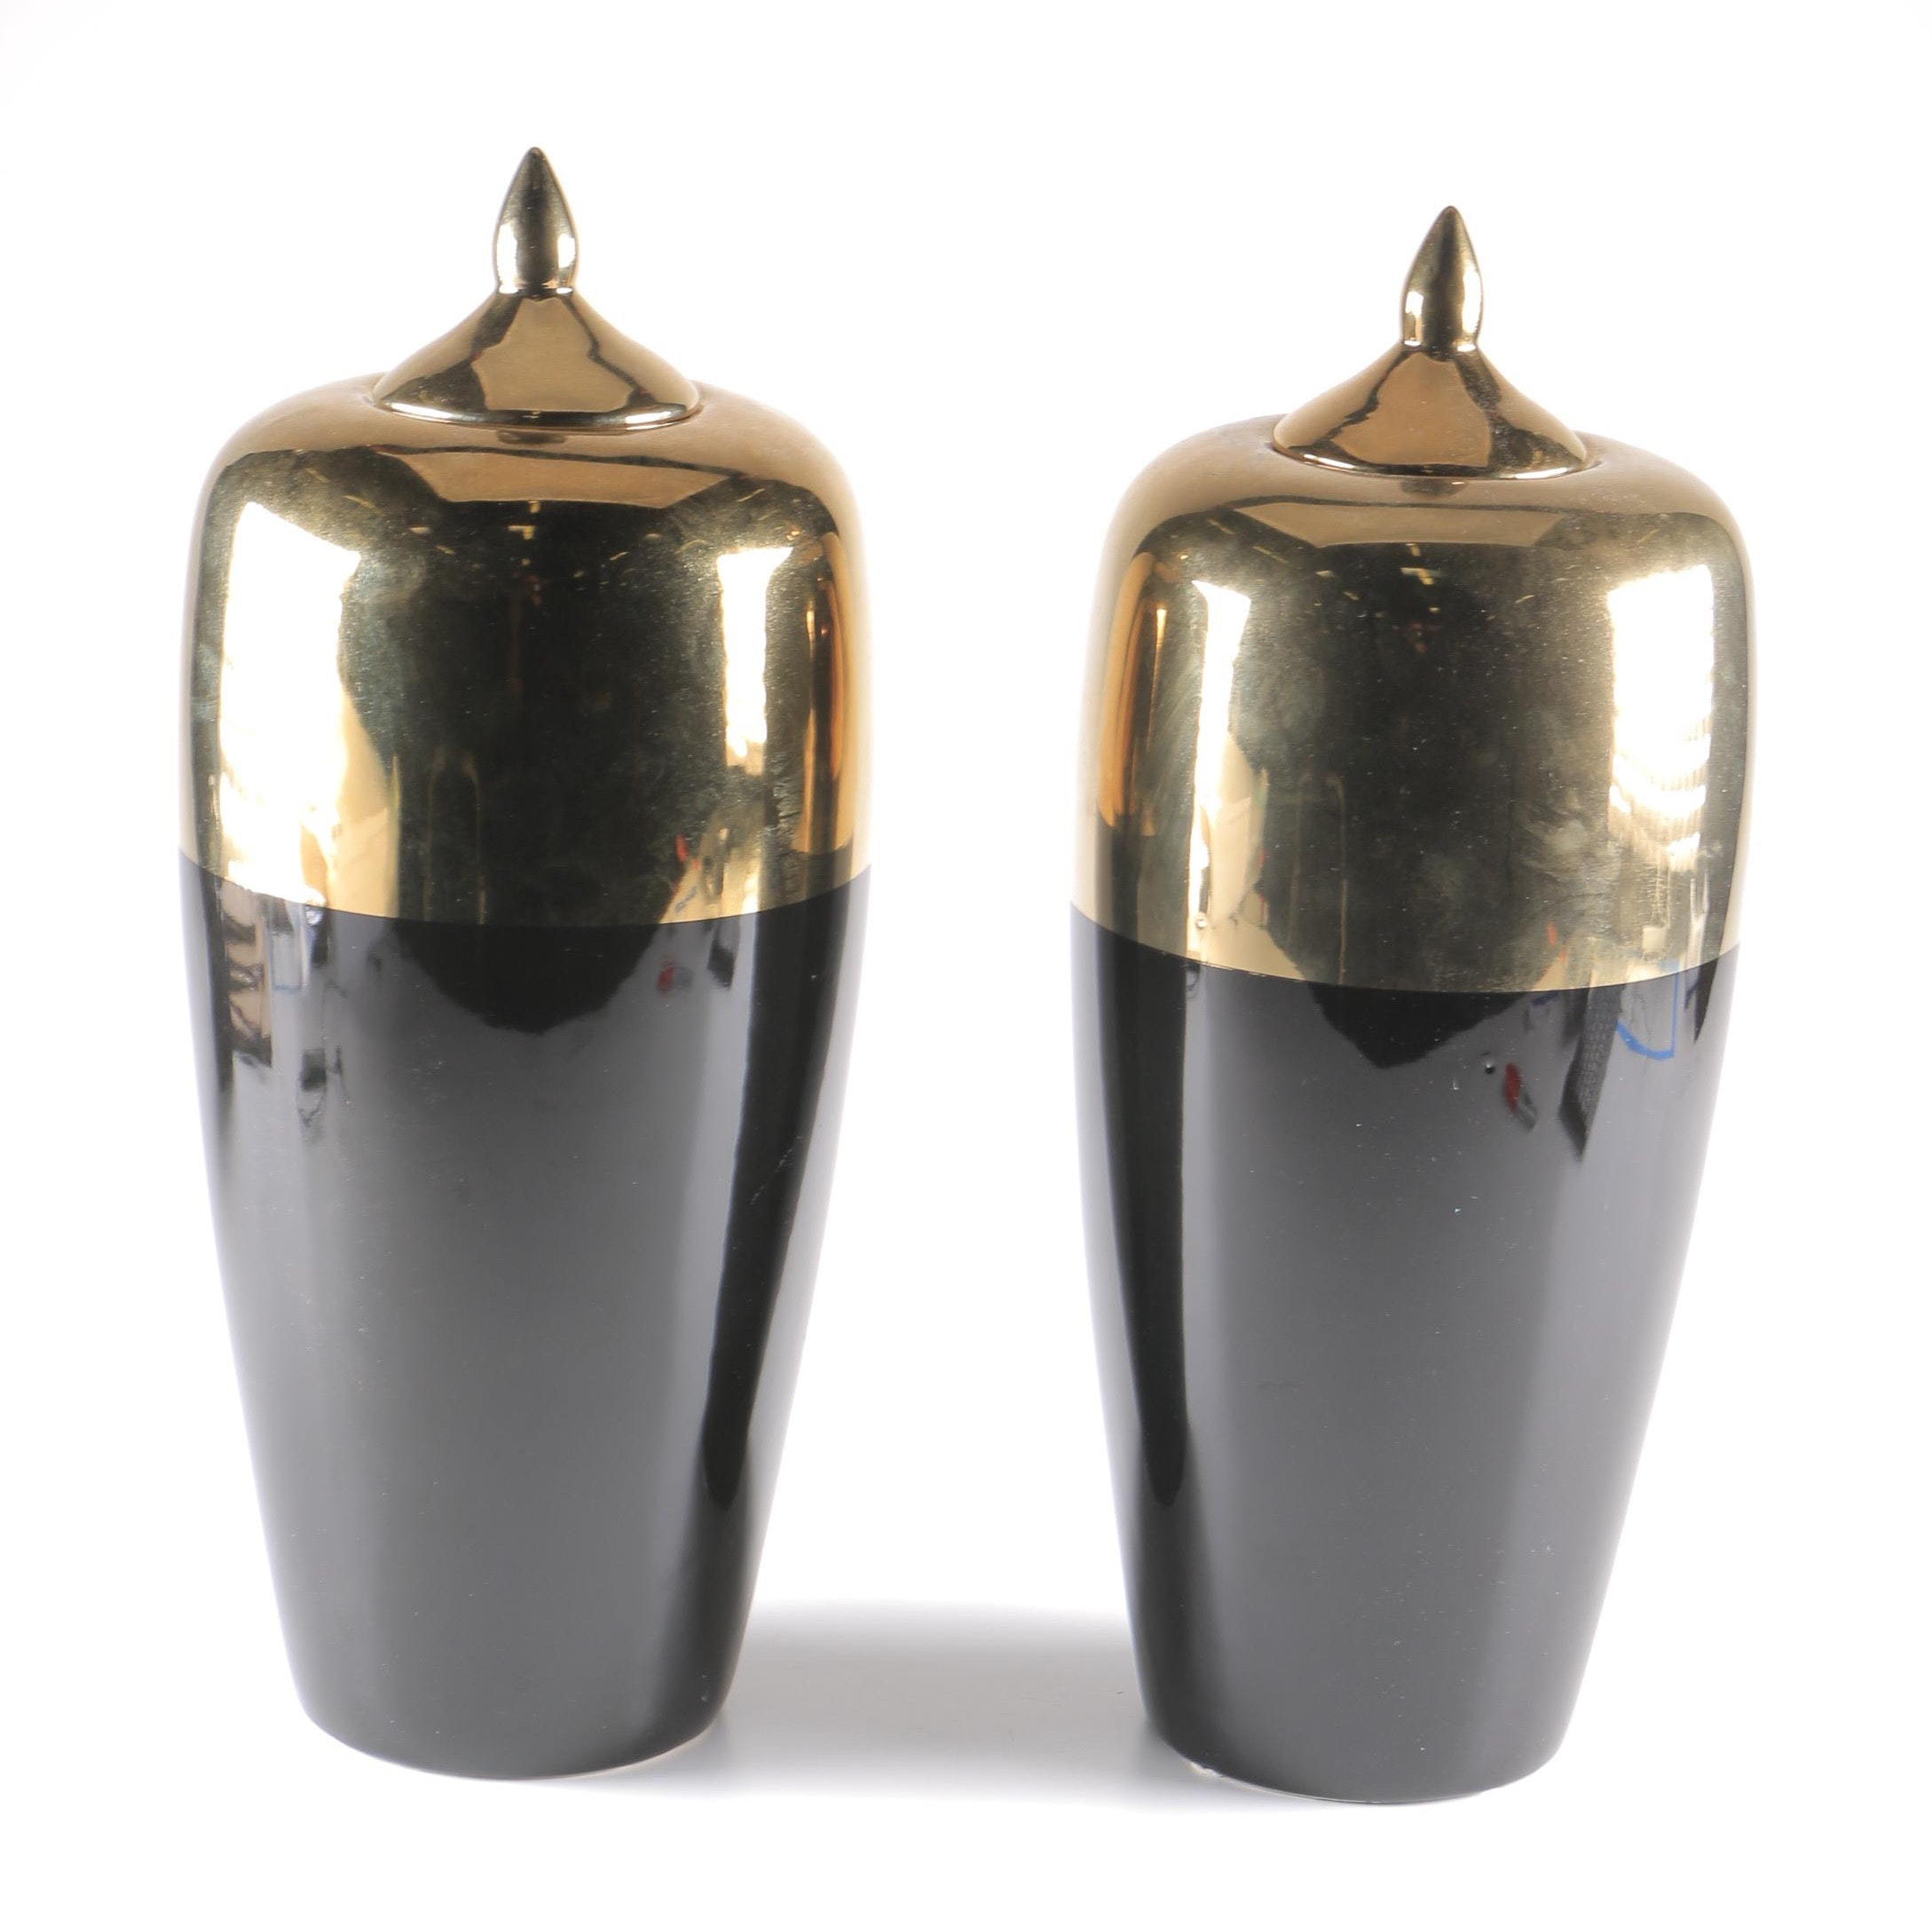 Two Black and Brass Decorative Urns